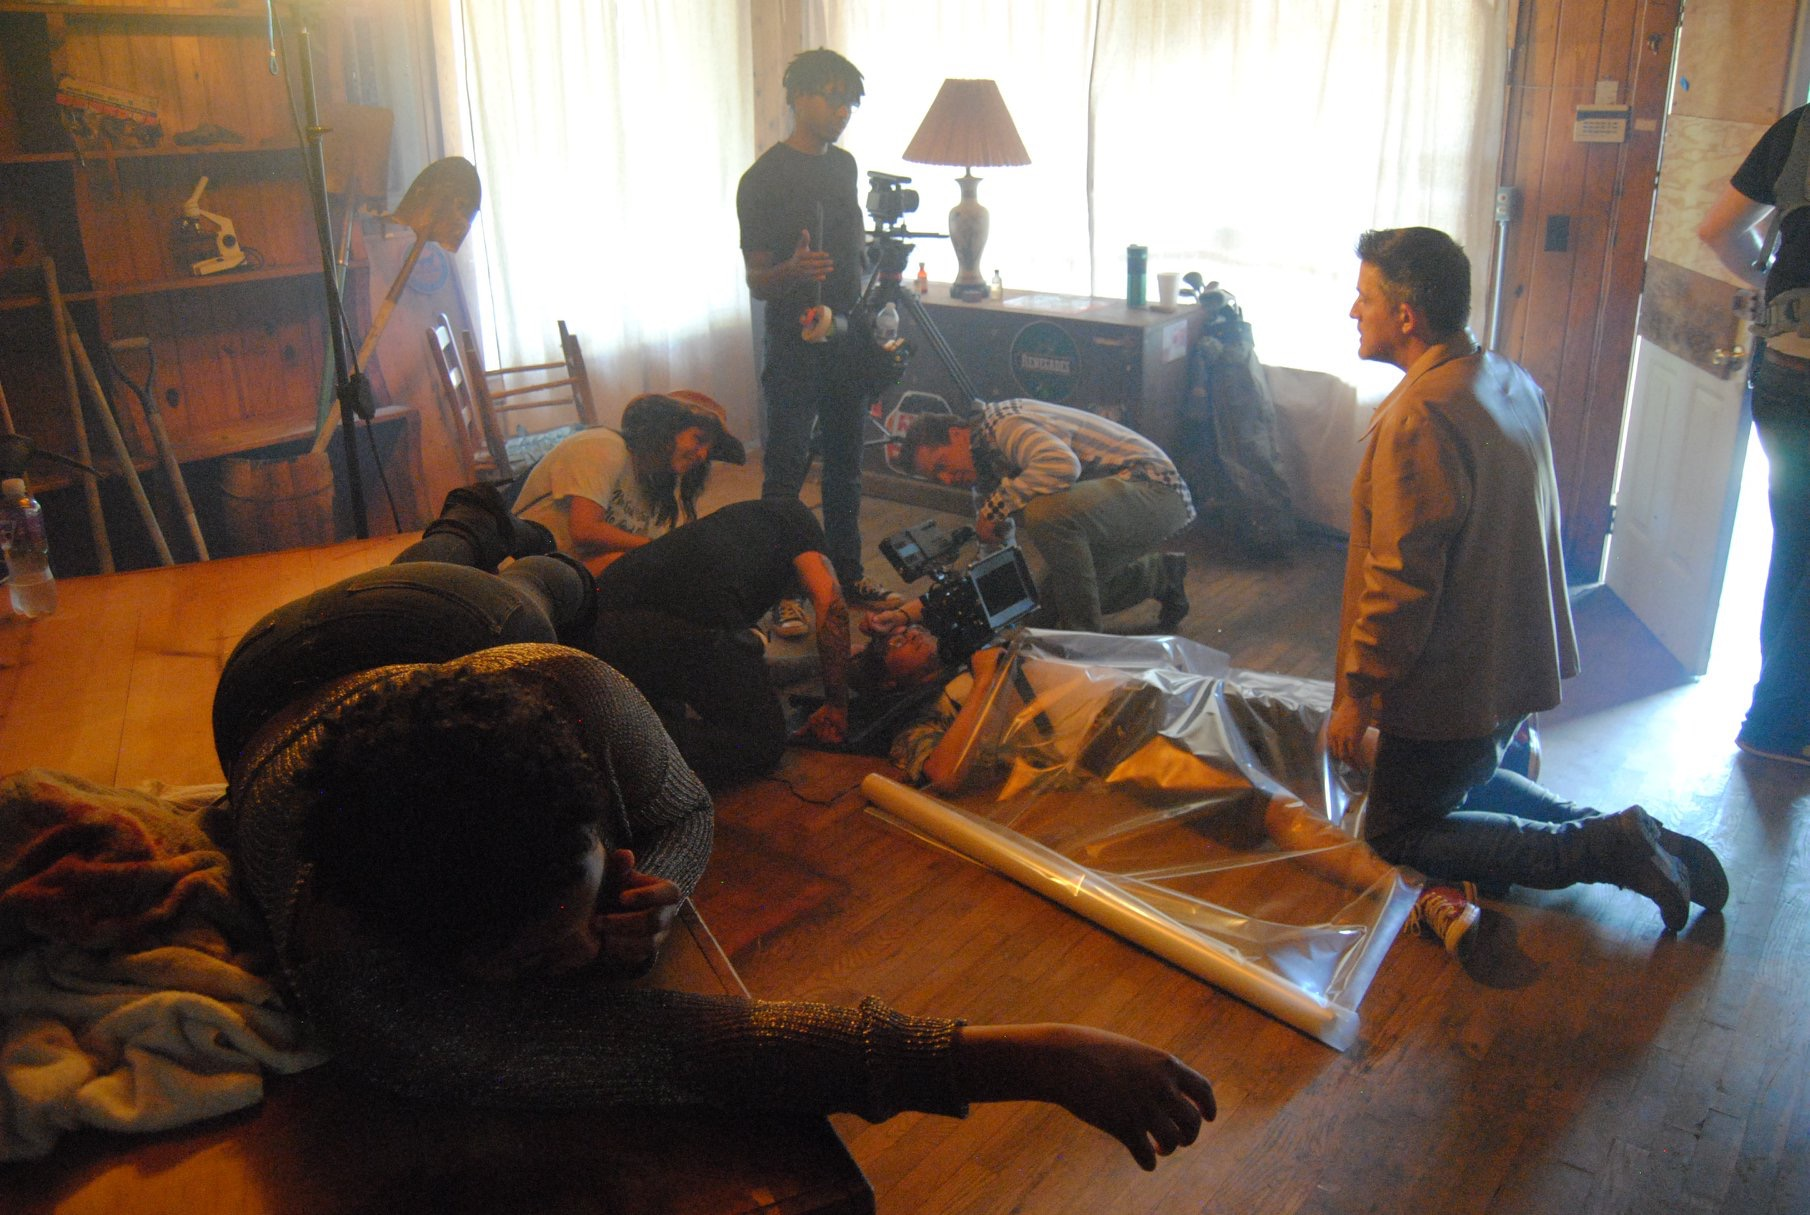 Behind the scene of sleight a 48 hour film project by m3 creative and michael mueller